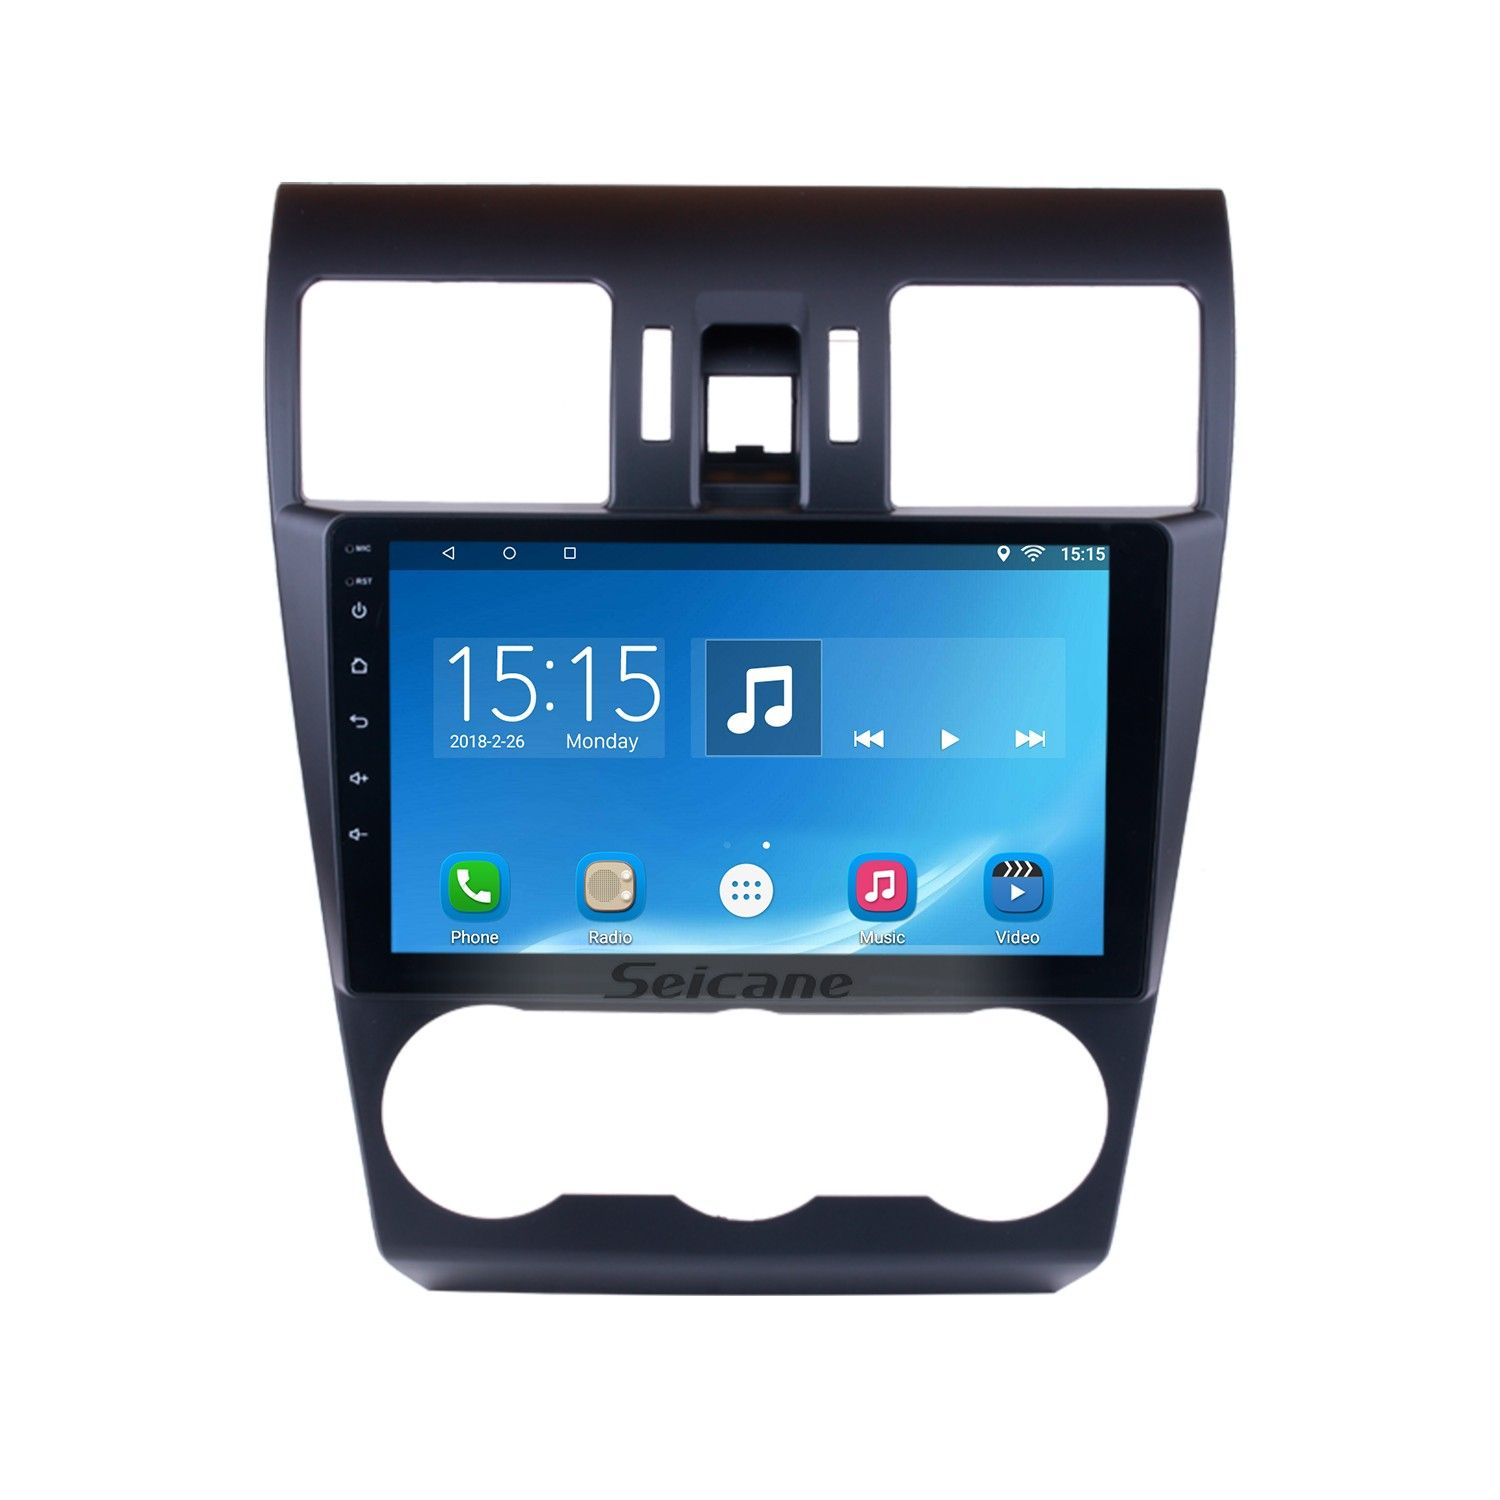 small resolution of seicane 9 inch 2015 subaru forester android 6 0 radio gps navigation system